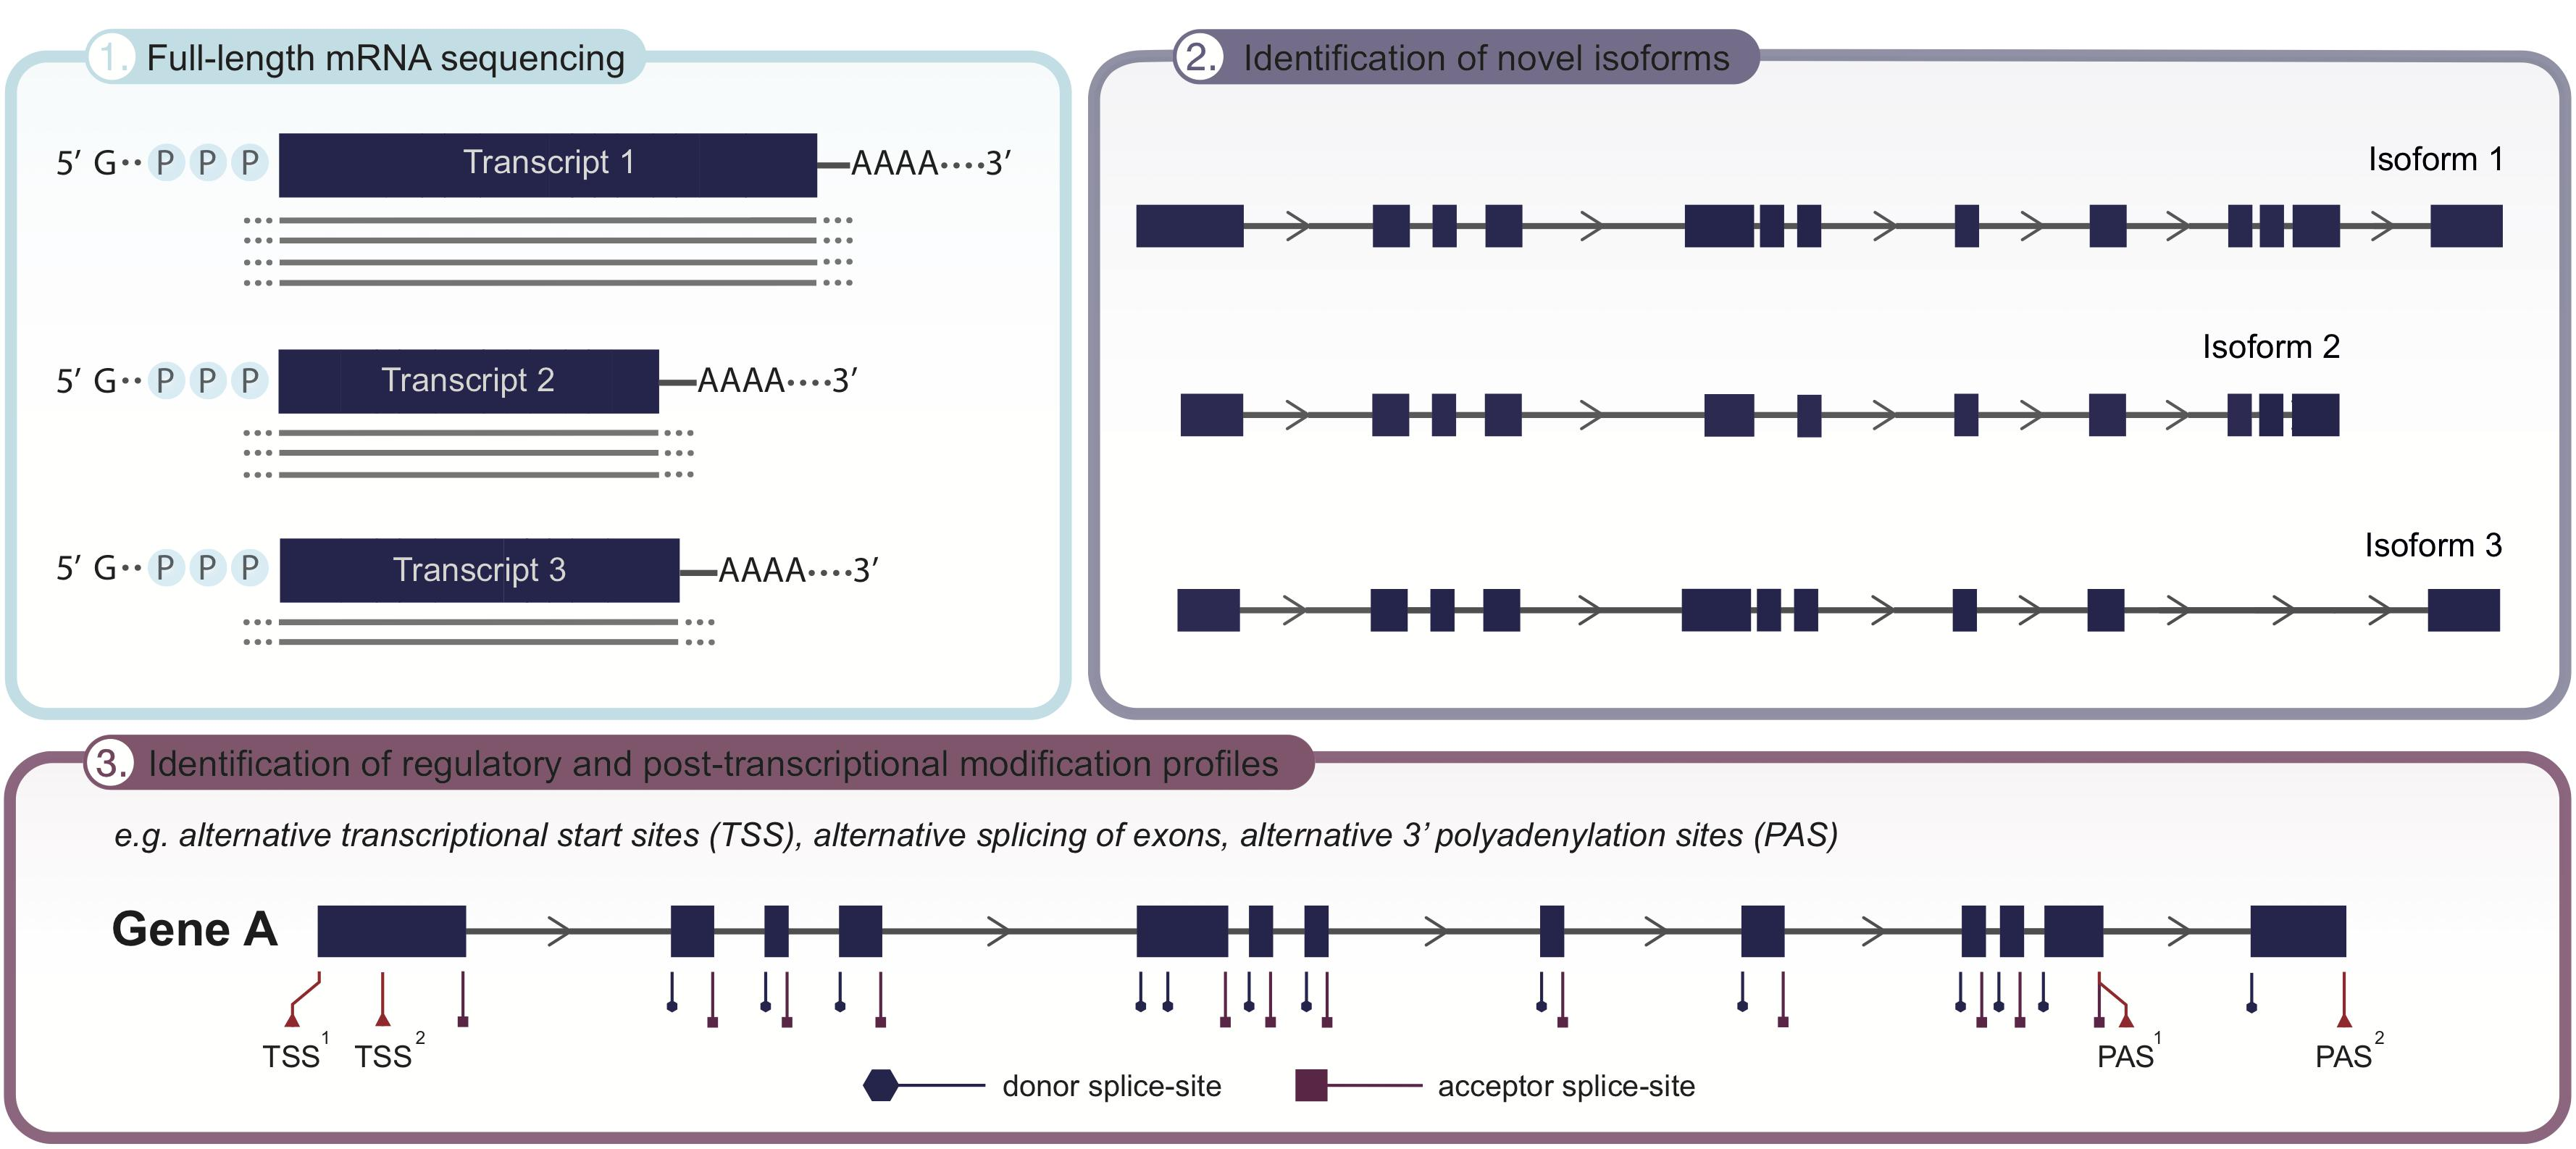 Frontiers   Long-Read Sequencing Emerging in Medical